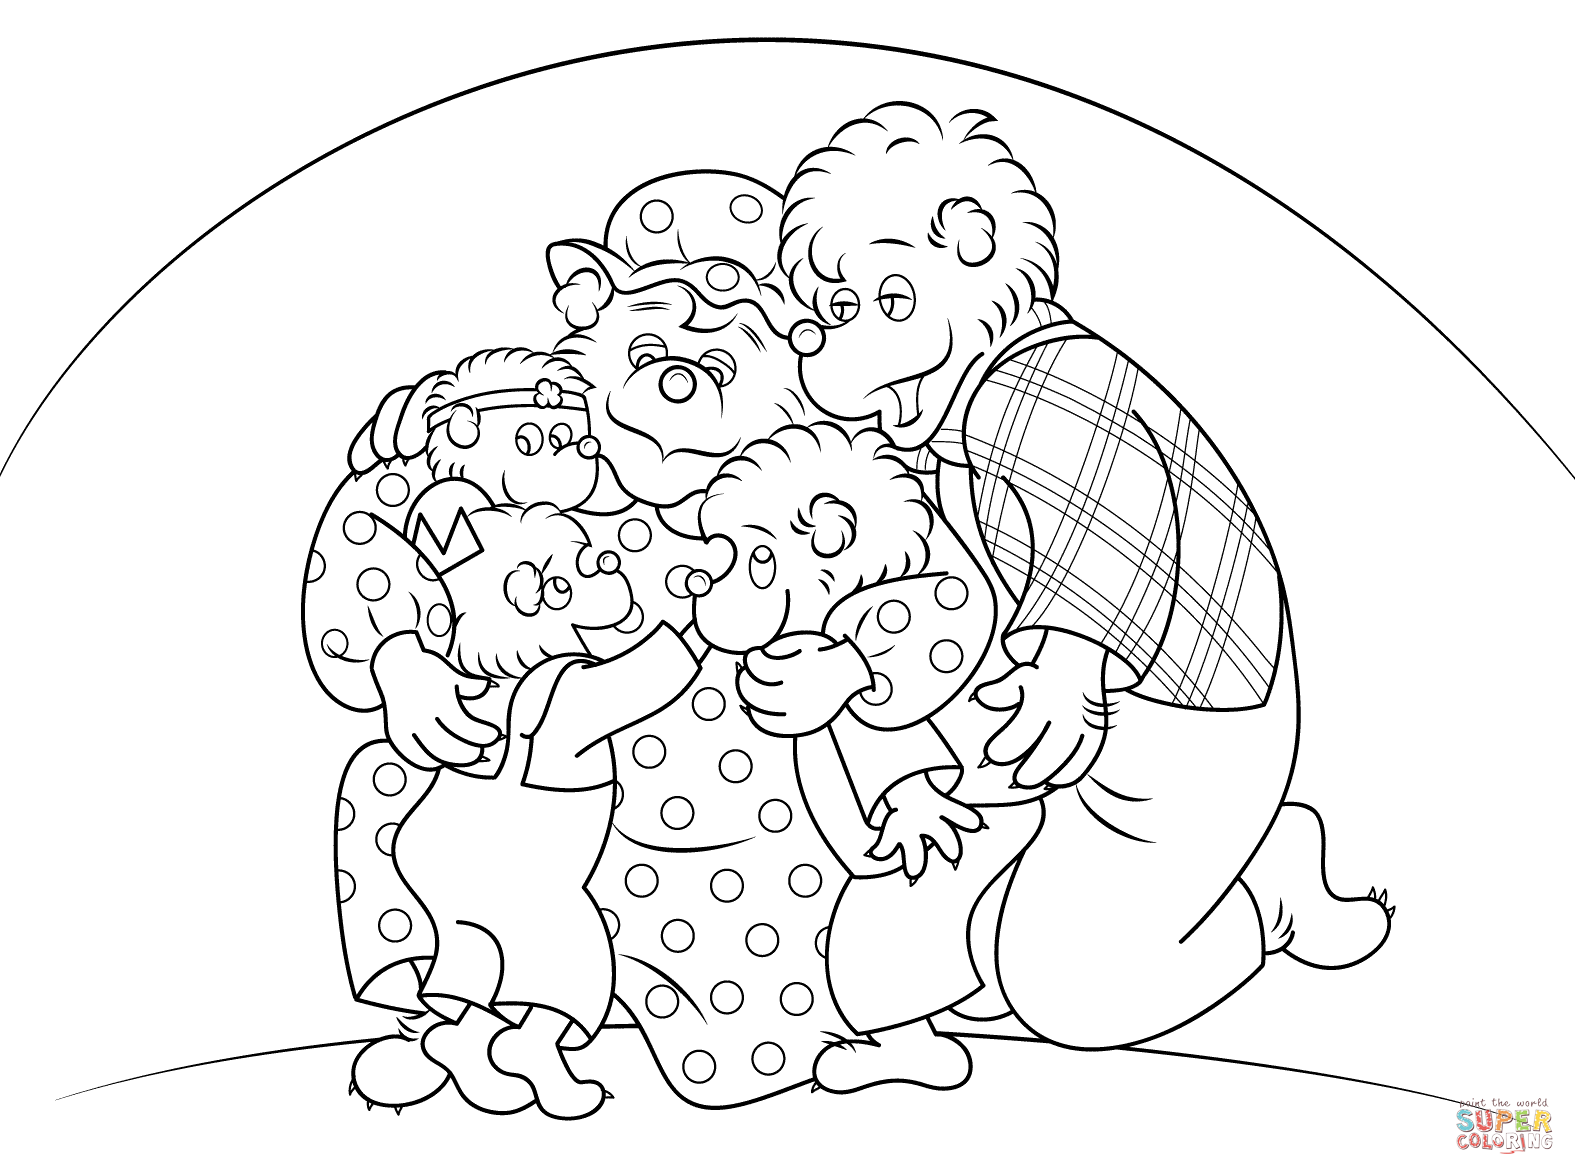 Image result for care bear cousins coloring pages | Bear coloring ... | 1175x1575